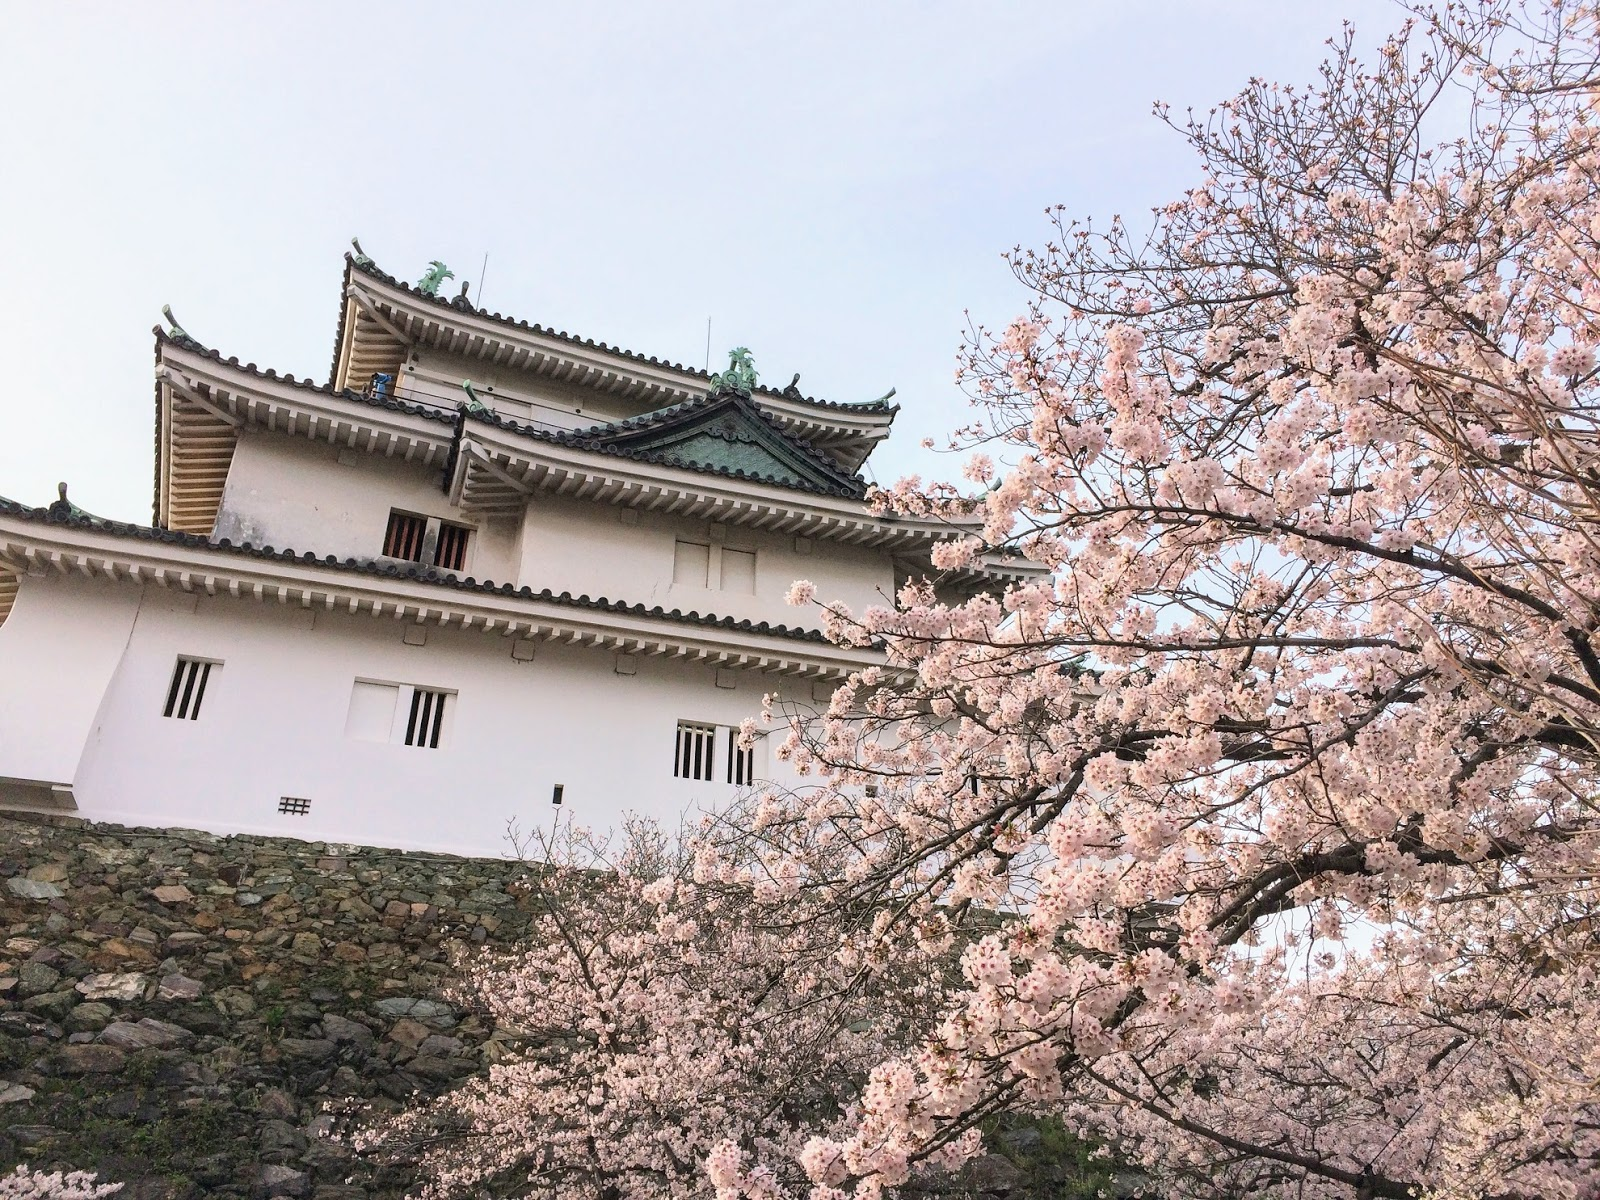 Wakayama castle with cherry blossoms